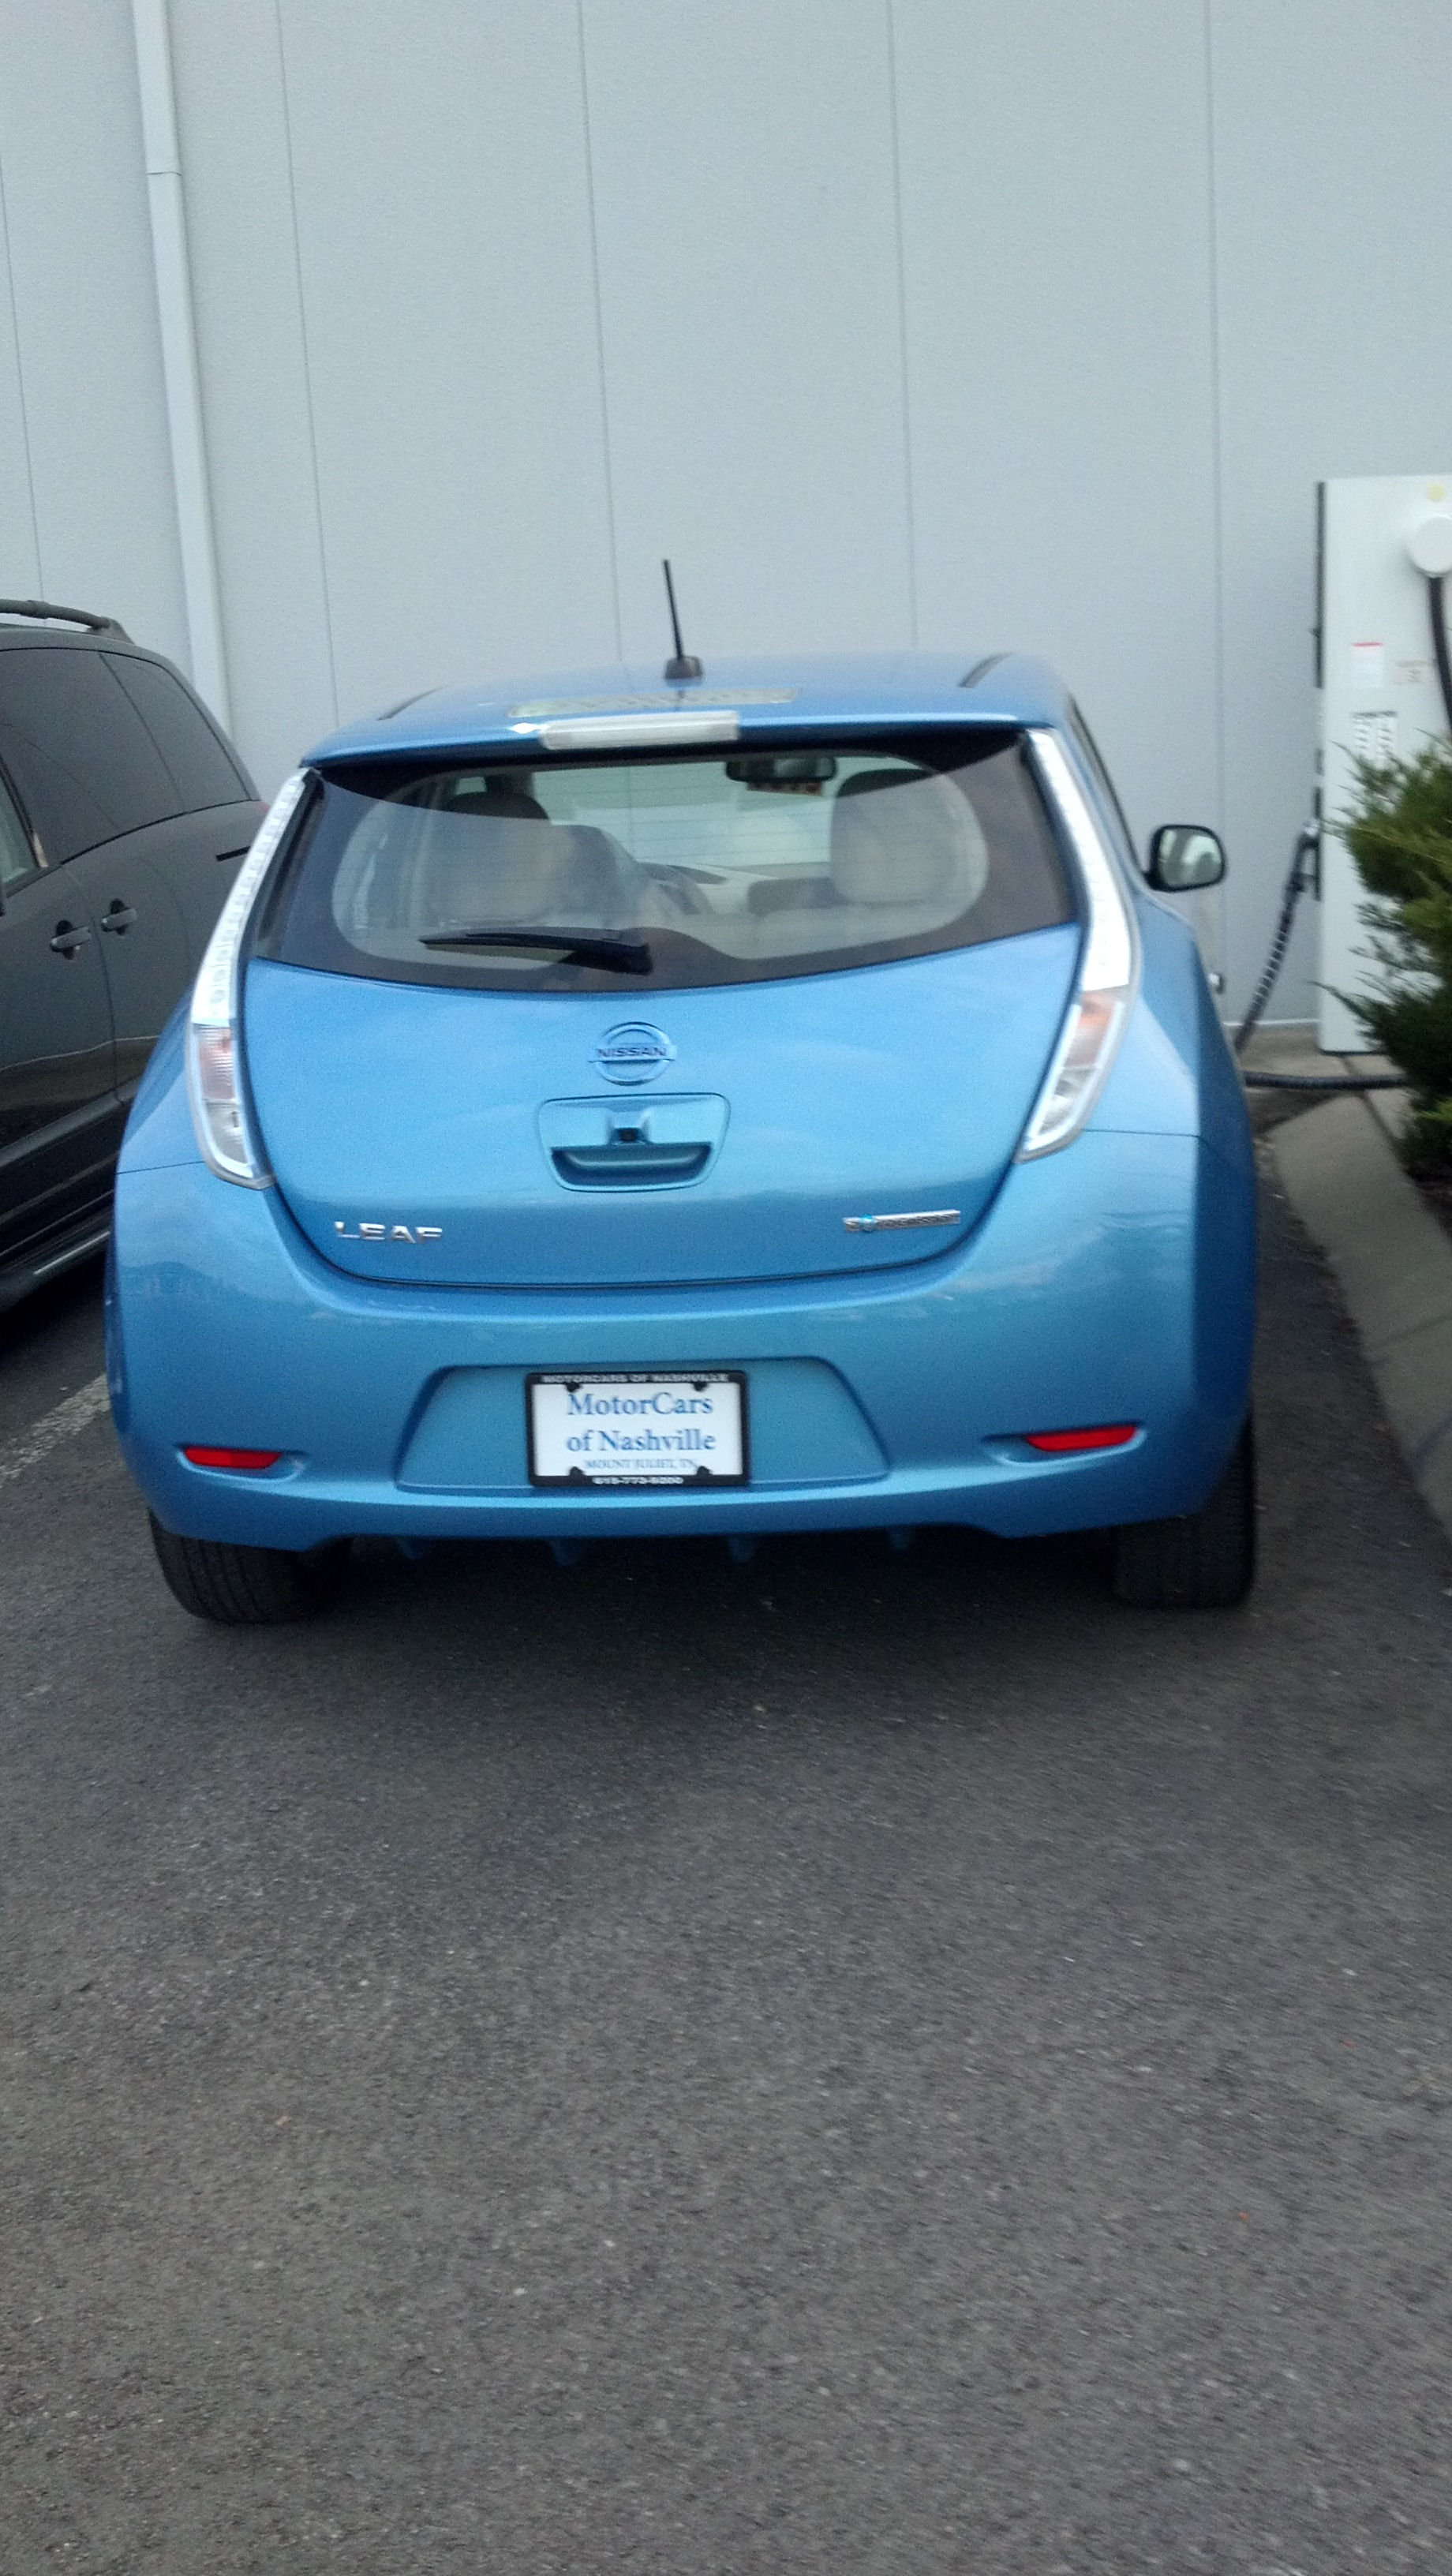 dc fast charger blocked by an ev parked overnight nissan. Black Bedroom Furniture Sets. Home Design Ideas